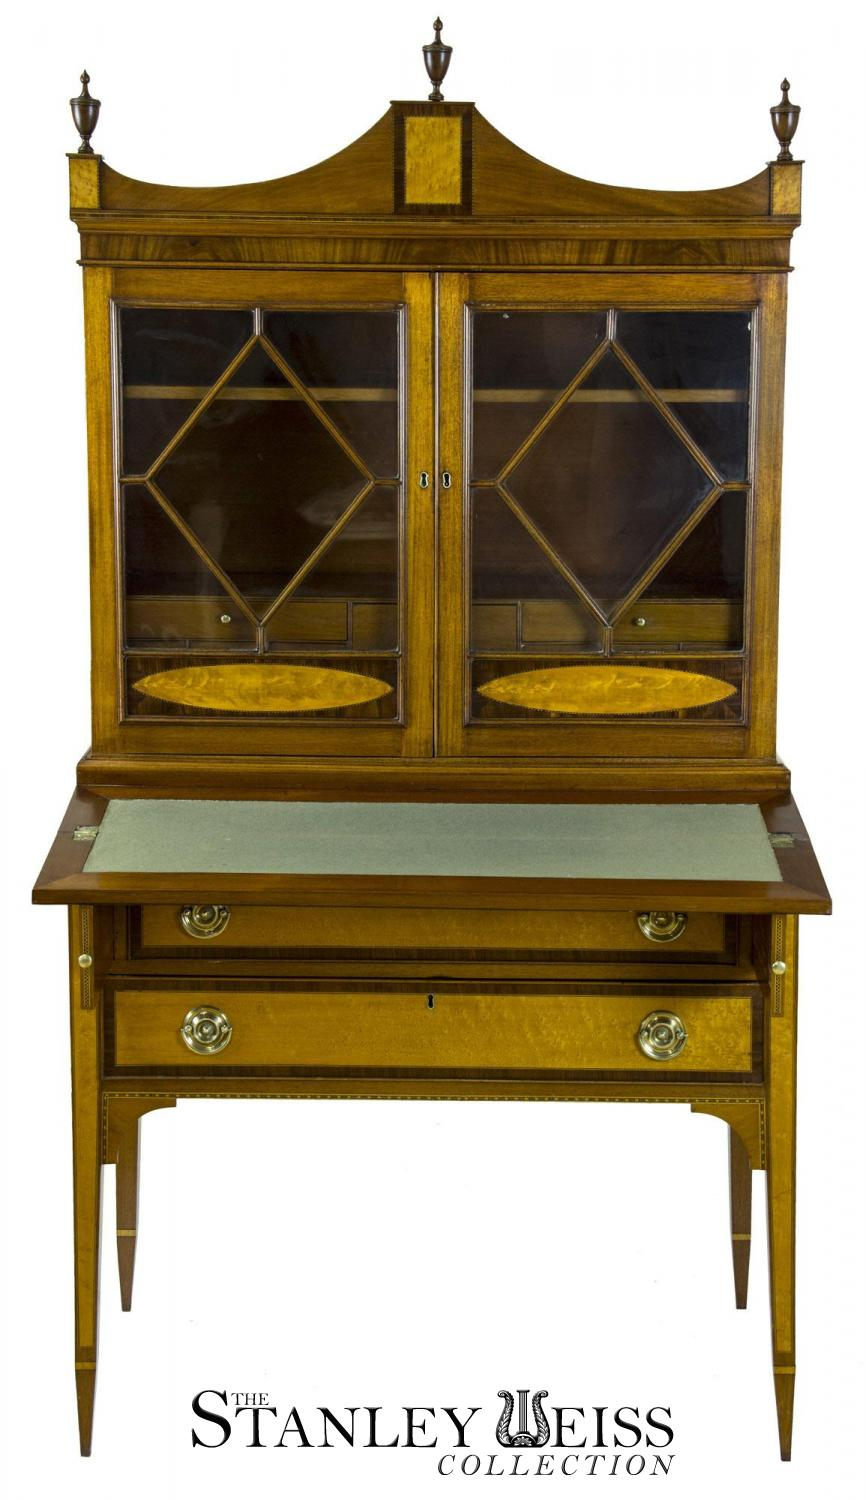 A Fine Federal Hepplewhite Inlaid Secretary Desk And Bookcase Display Case Gany Bird S Eye Maple Portsmouth New Hampshire C 1790 1810